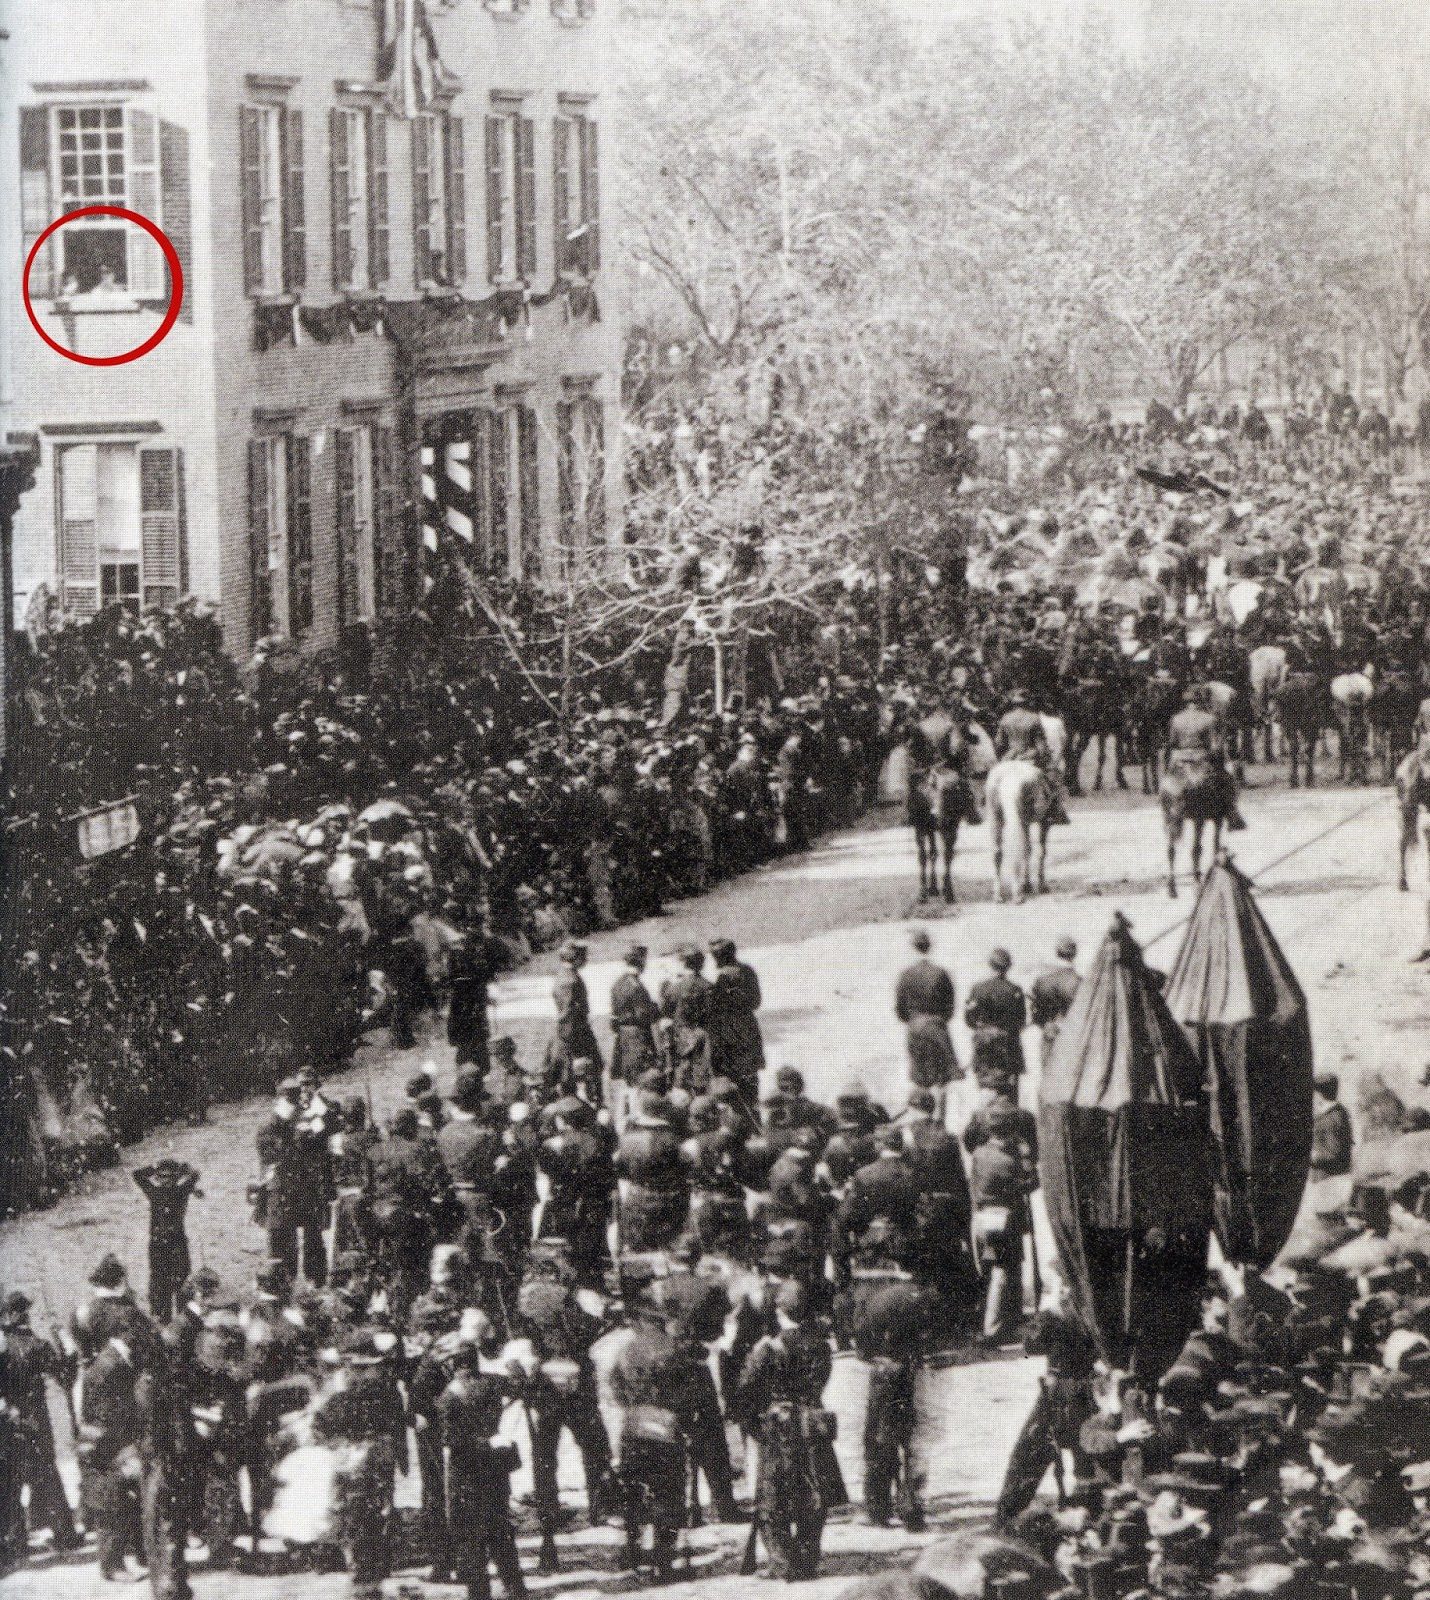 James Nevius: Teddy Roosevelt and Lincoln's Funeral